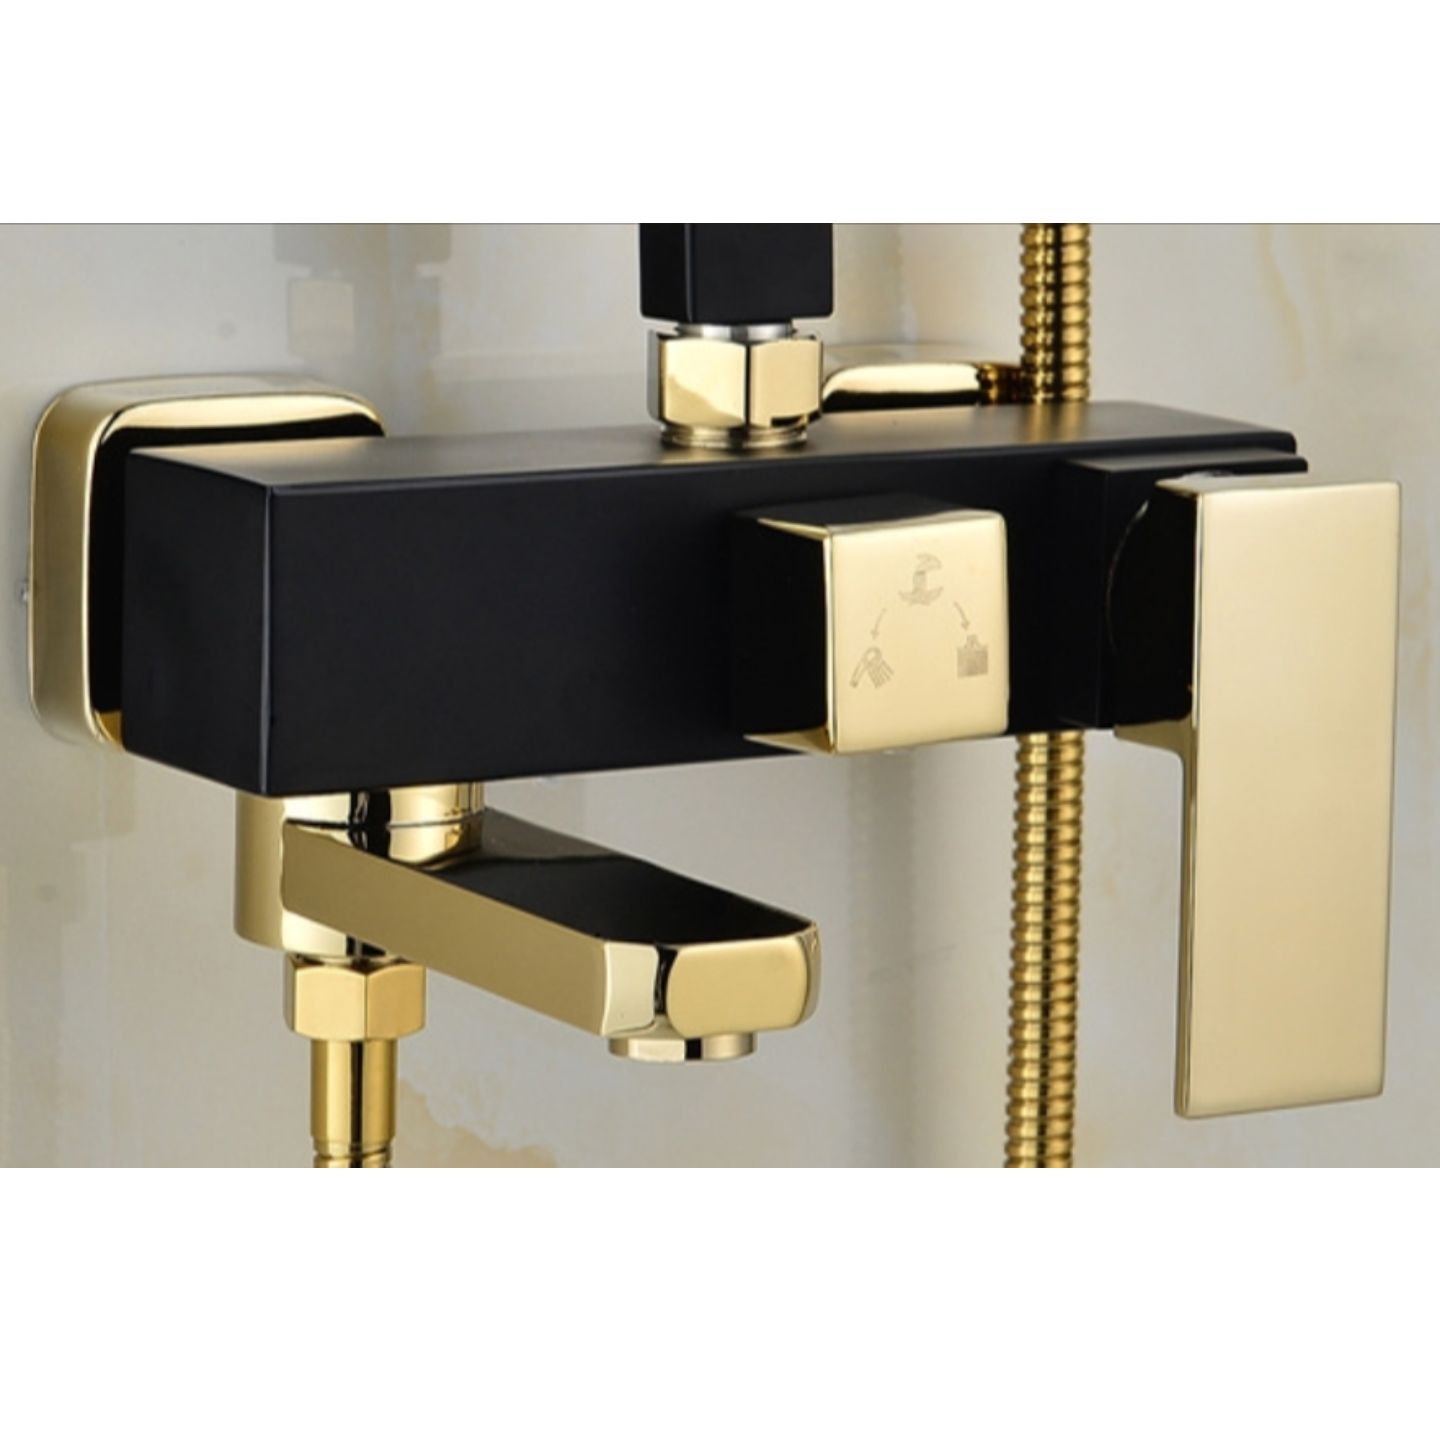 European Square Rainshower Set Black,Gold & White